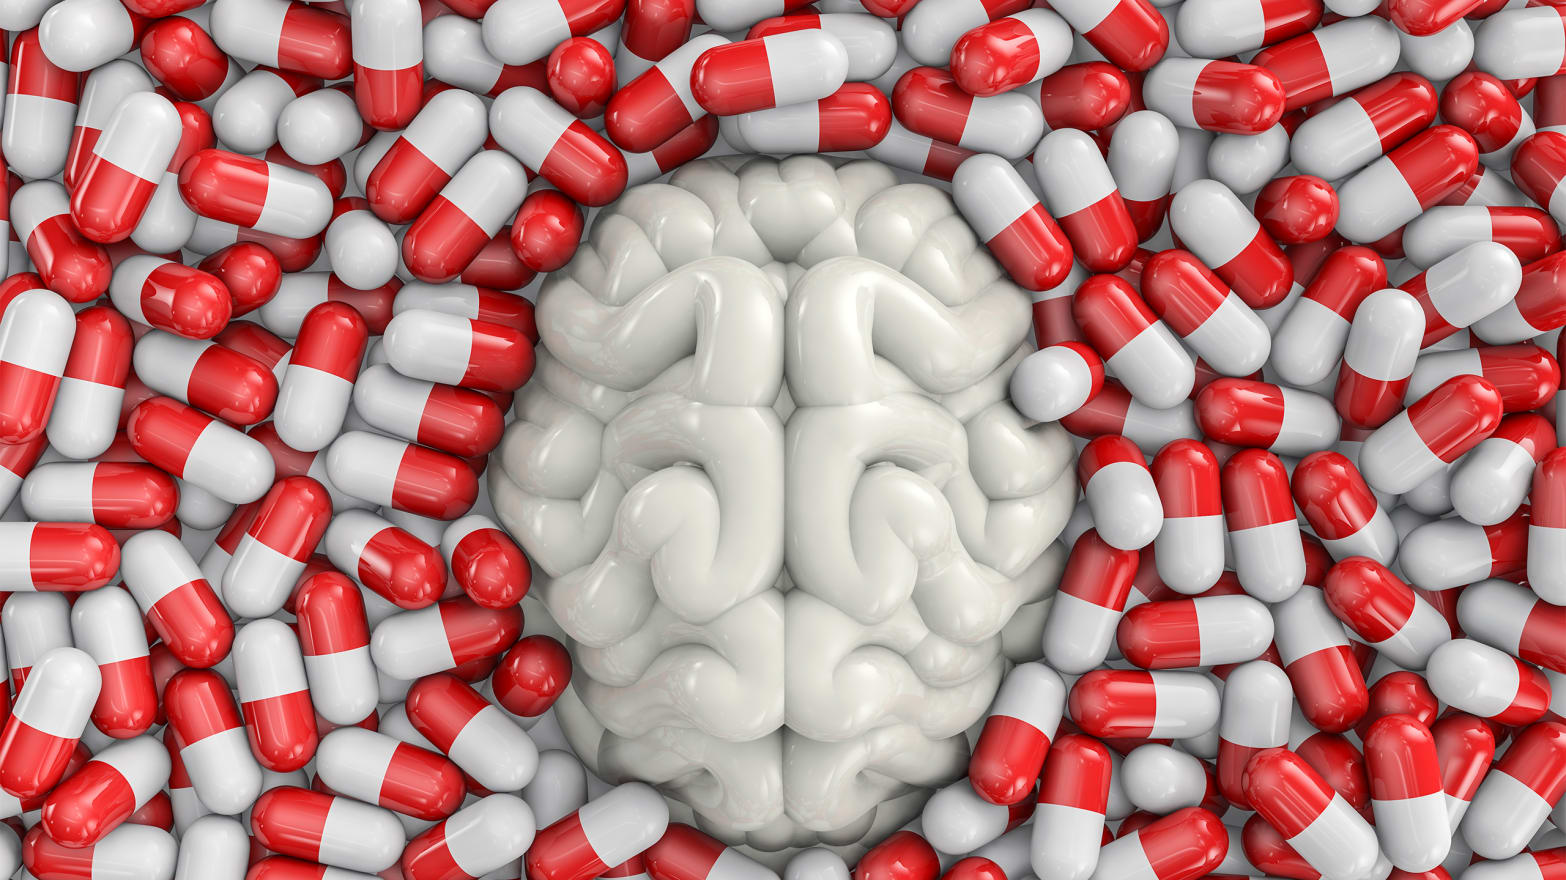 Adderall Use At Cornellaway Of Life For >> Can Adderall Abuse Trigger Temporary Schizophrenia